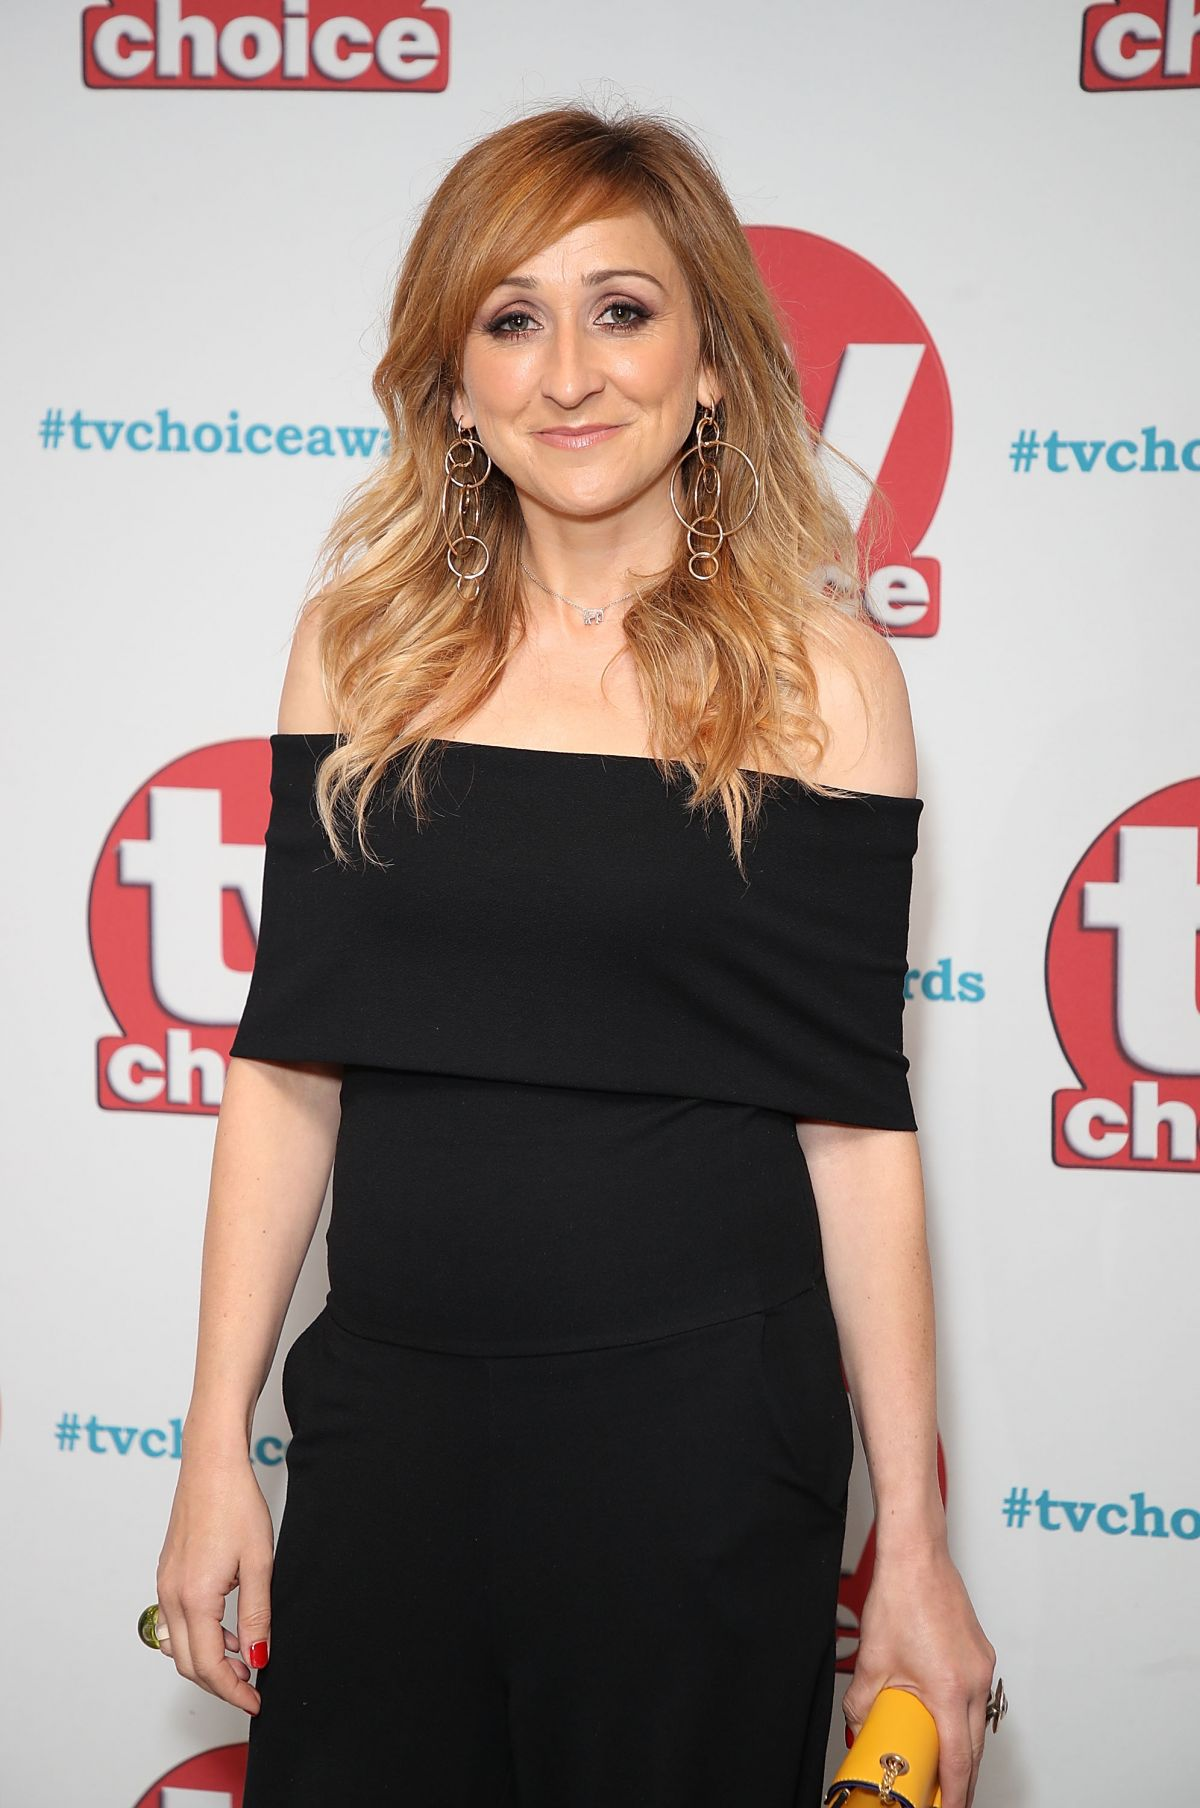 CHARLOTTE BELLAMY at TV Choice Awards in London 09/04/2017